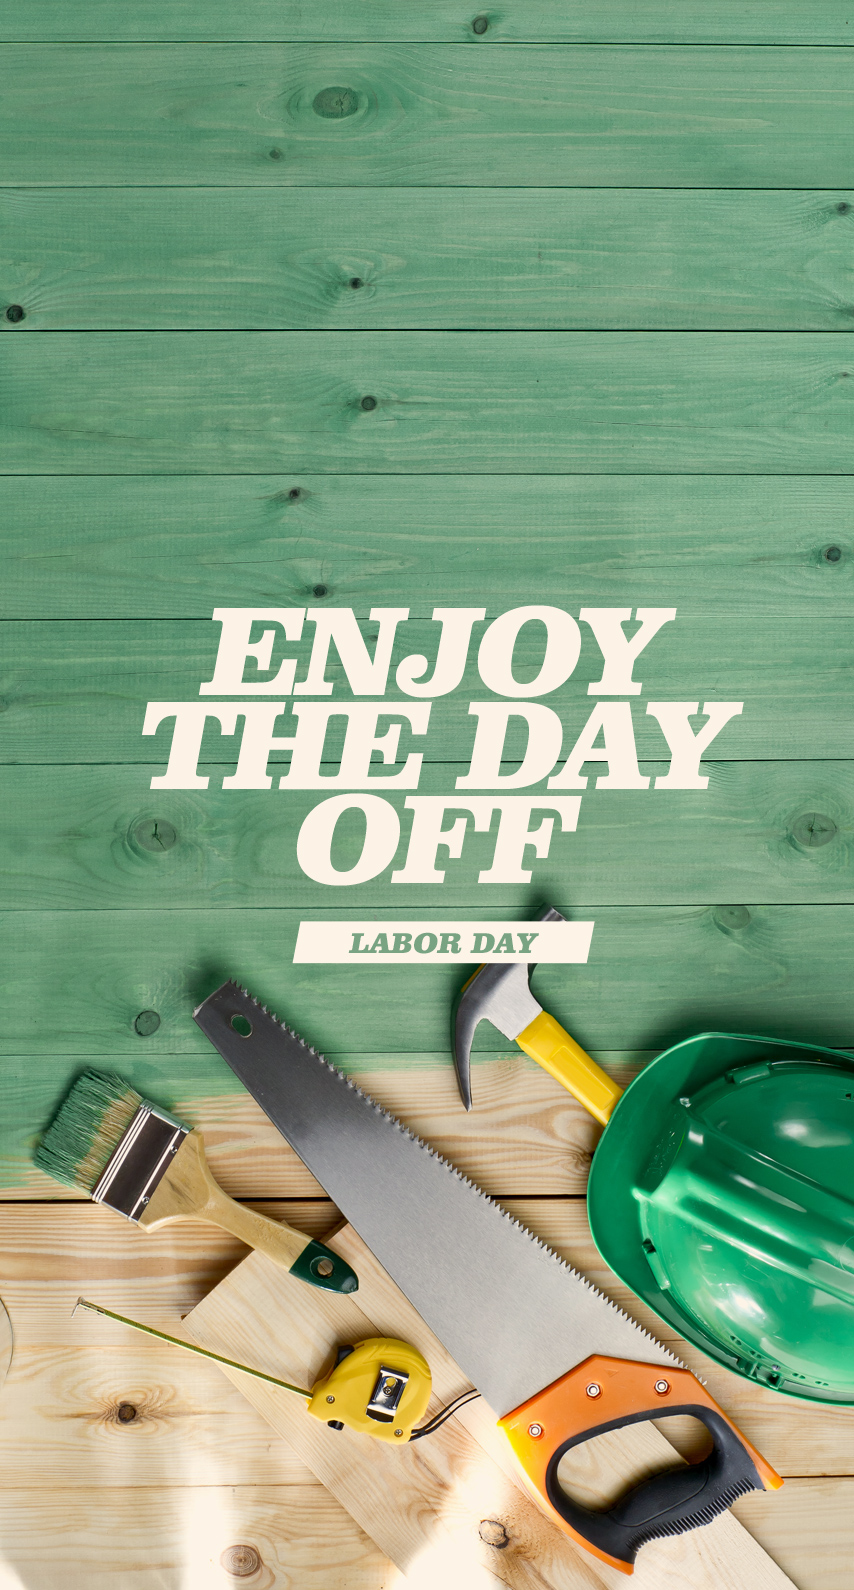 labor day, turquoise